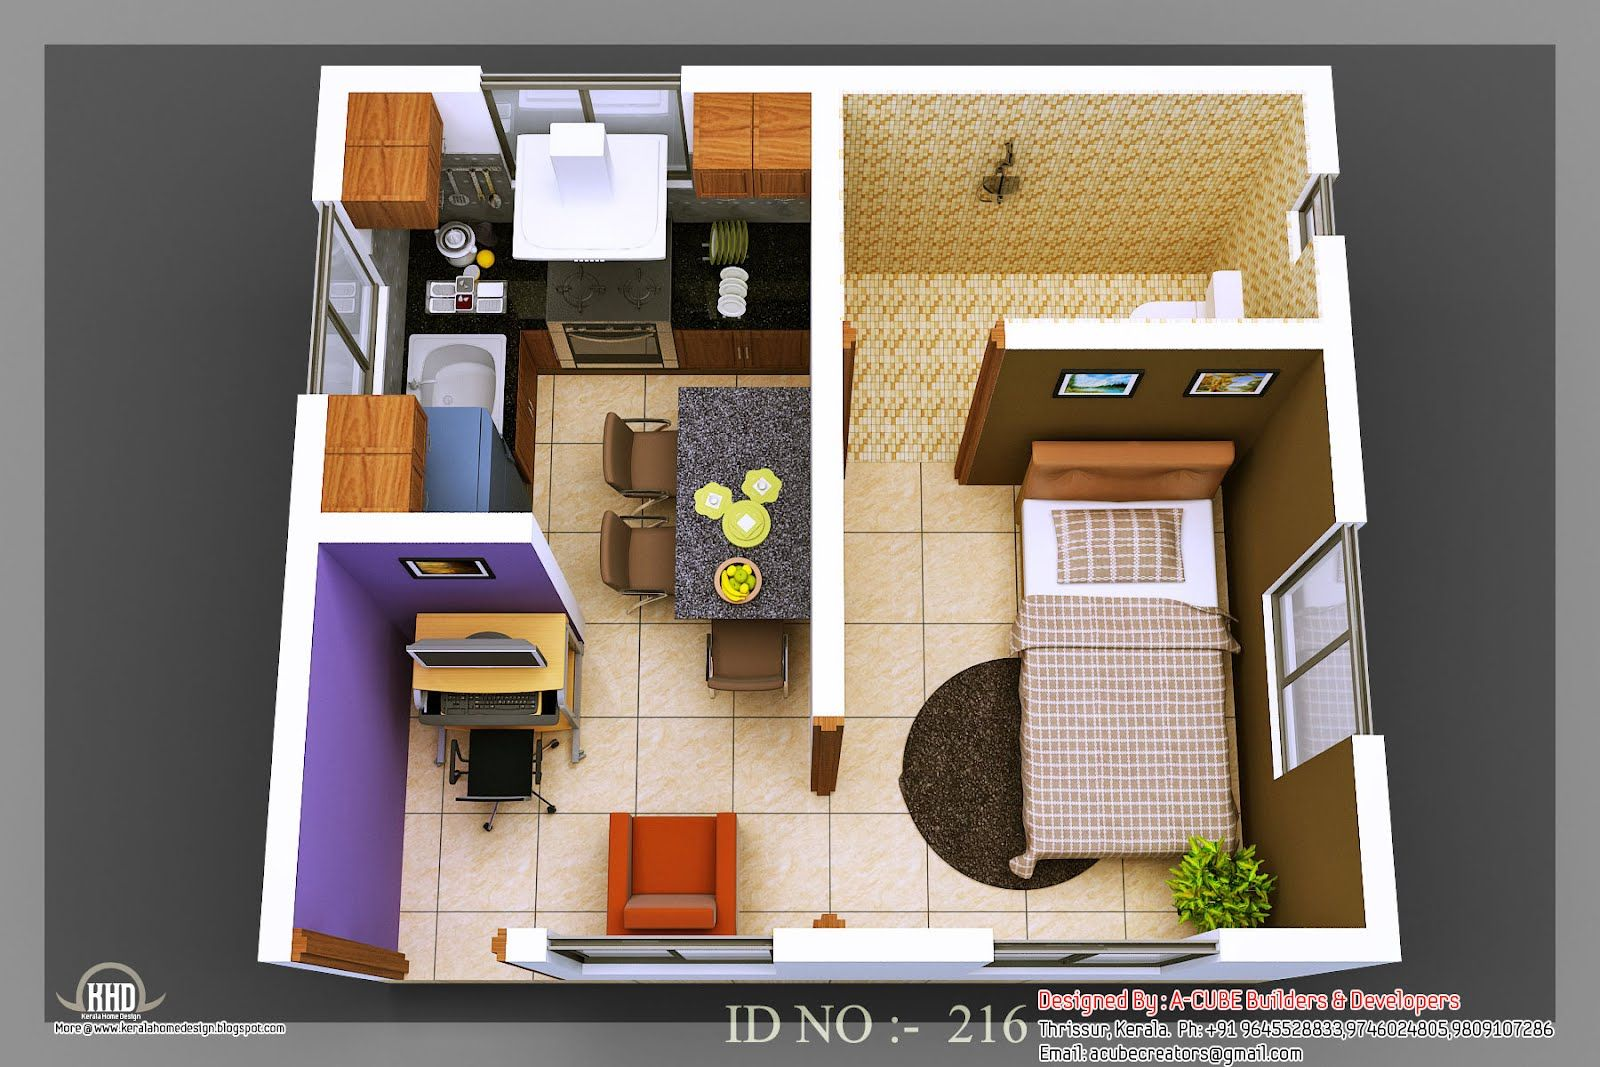 isometric views small house plans kerala home design floor information isometric small house plans - House Design Plan